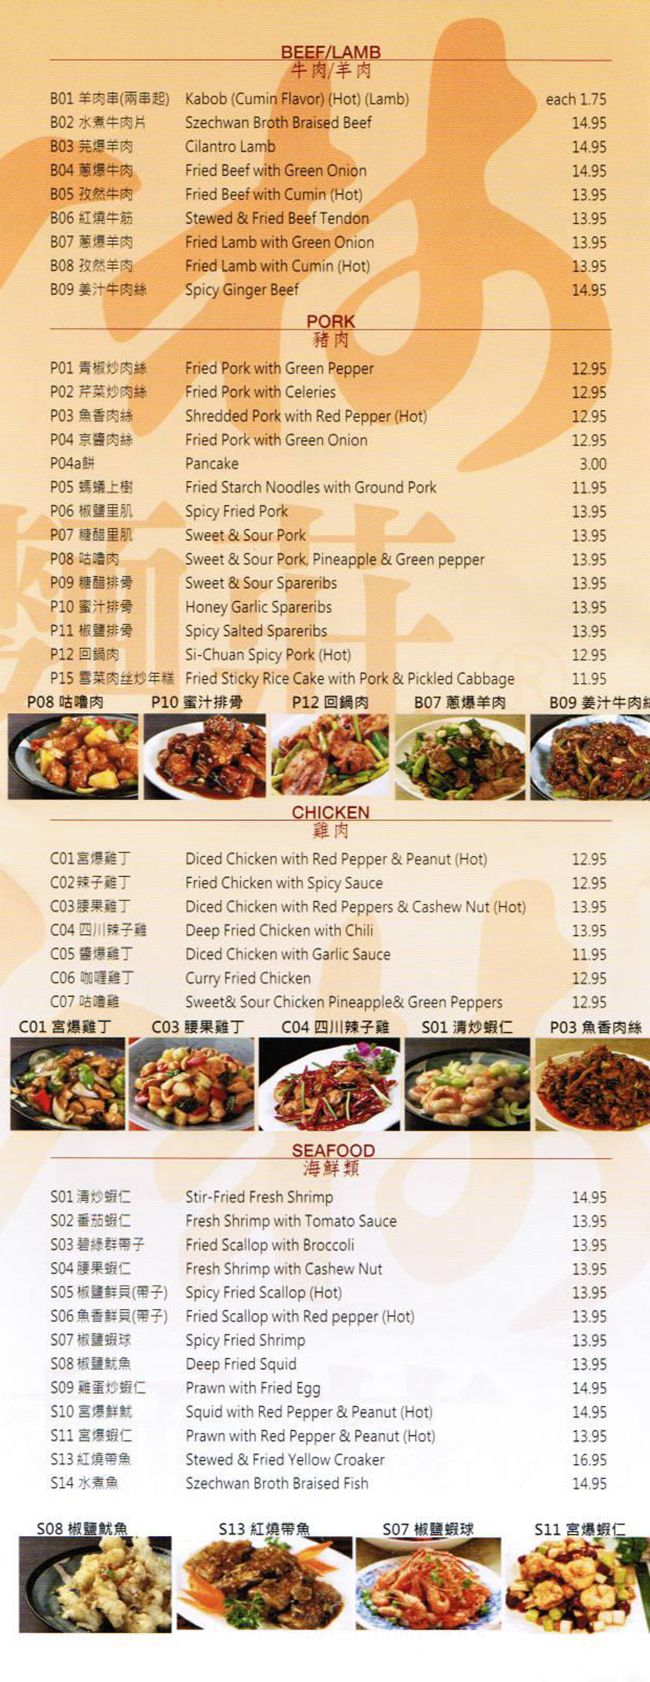 When it comes to delicious cheap eats in Vancouver, it's hard to beat Shaolin Noodle House. Take a look at our menu to see the prices! Six huge pieces of pan-fried beef, pork, or chickendumplings cost only $7.50.